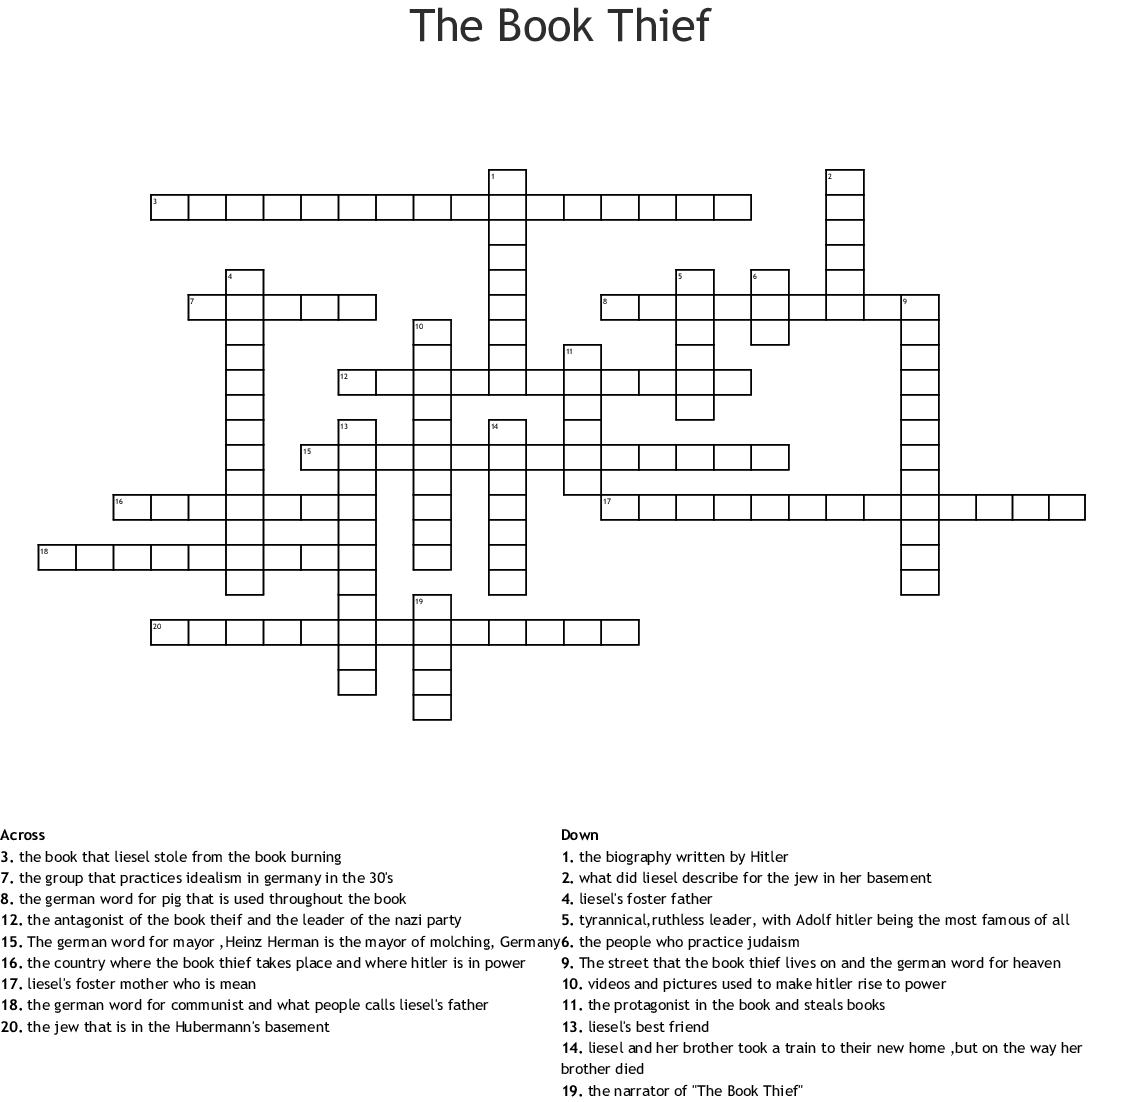 The Book Thief Word Search